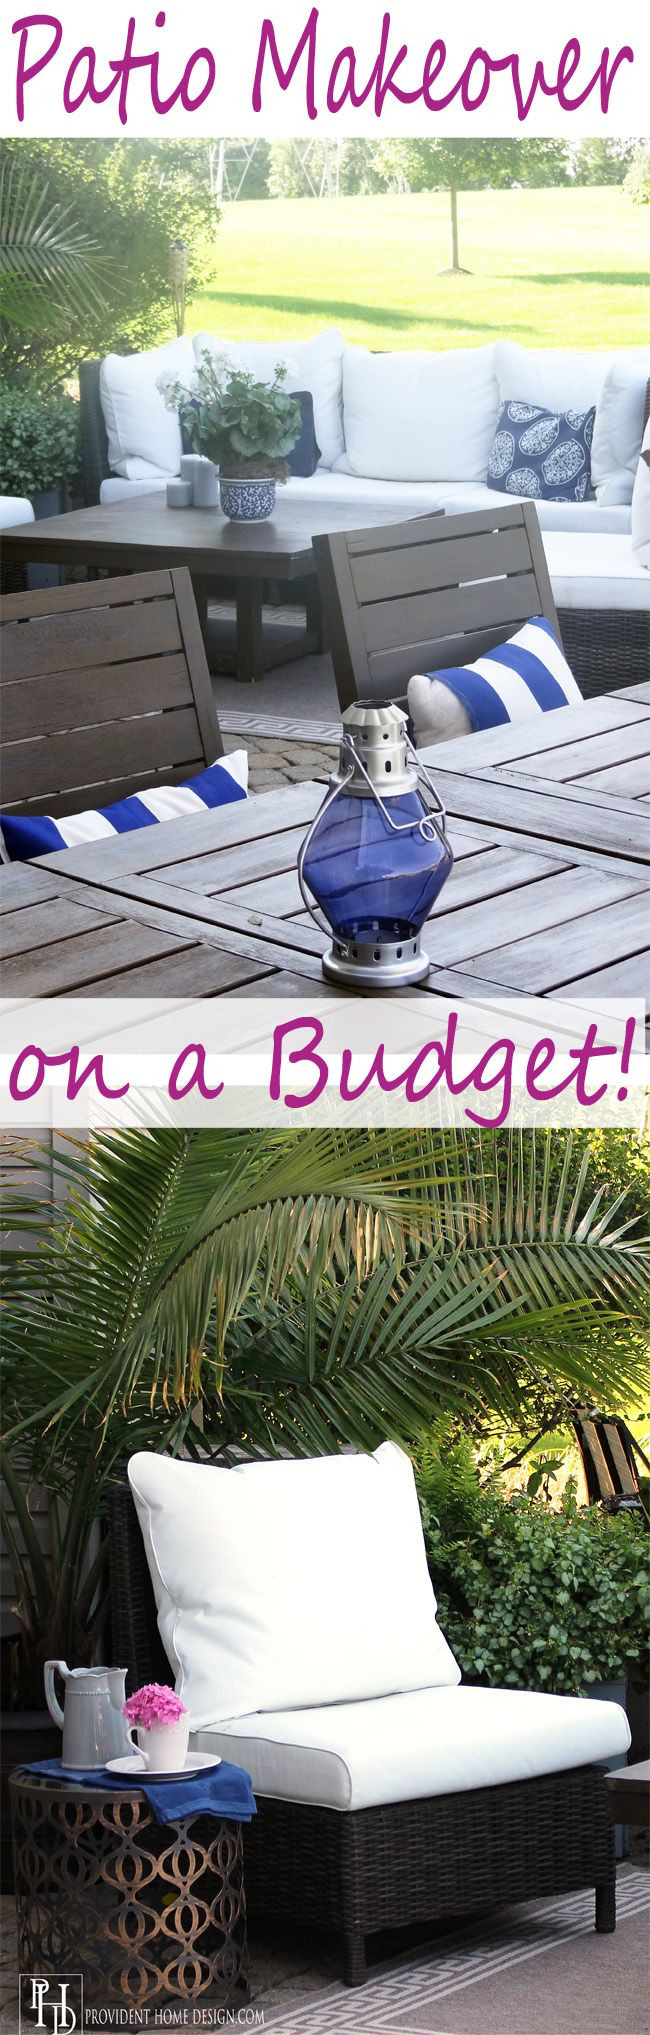 Come see how I furnished my patio space with garage sale finds, curbside throw always, and great deals to create a beautiful outdoor oasis! Decorating with style on a budget!